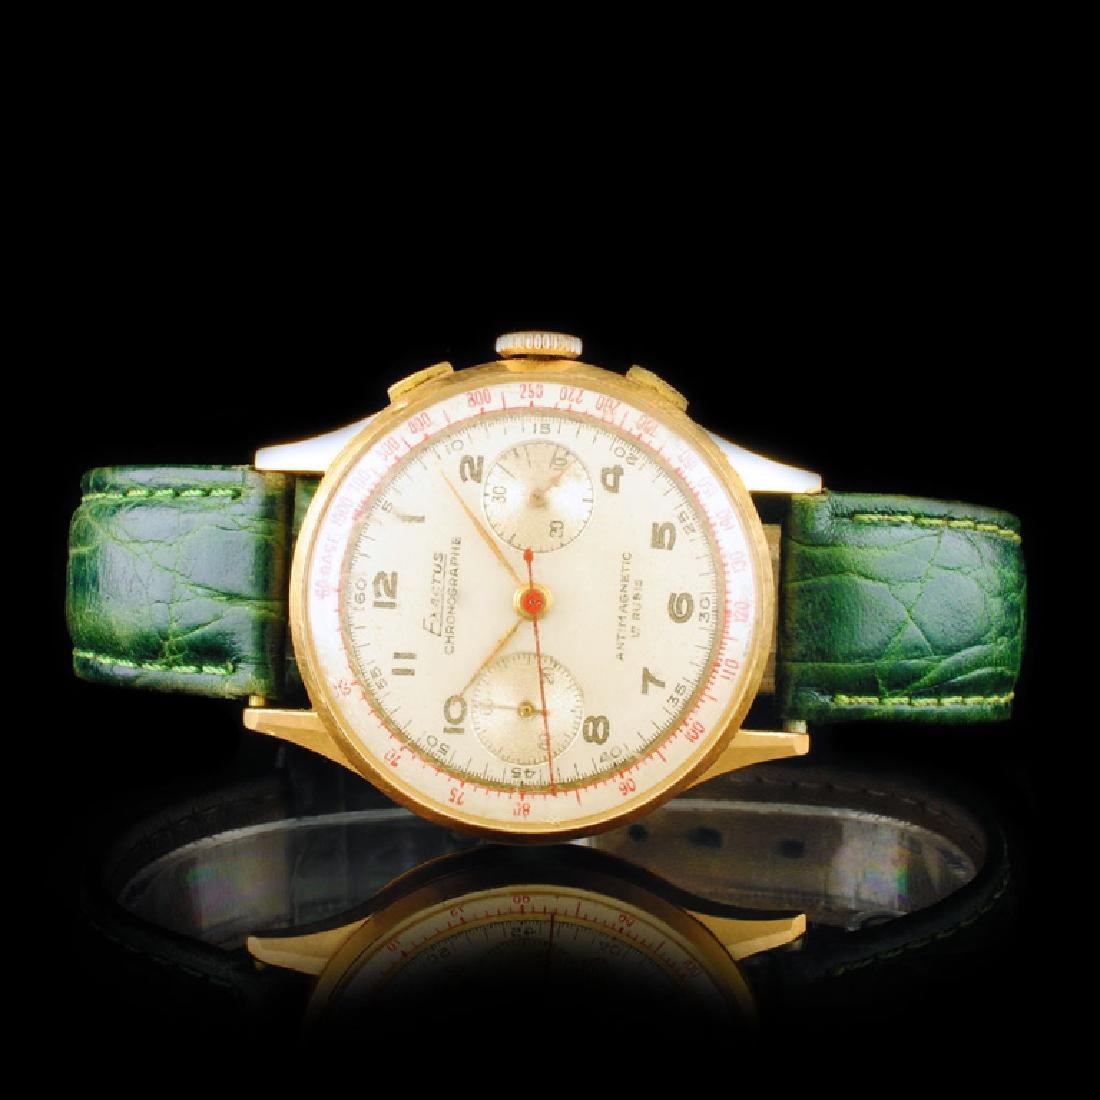 Exactus Chronographe 18K Gold 35mm Wristwatch